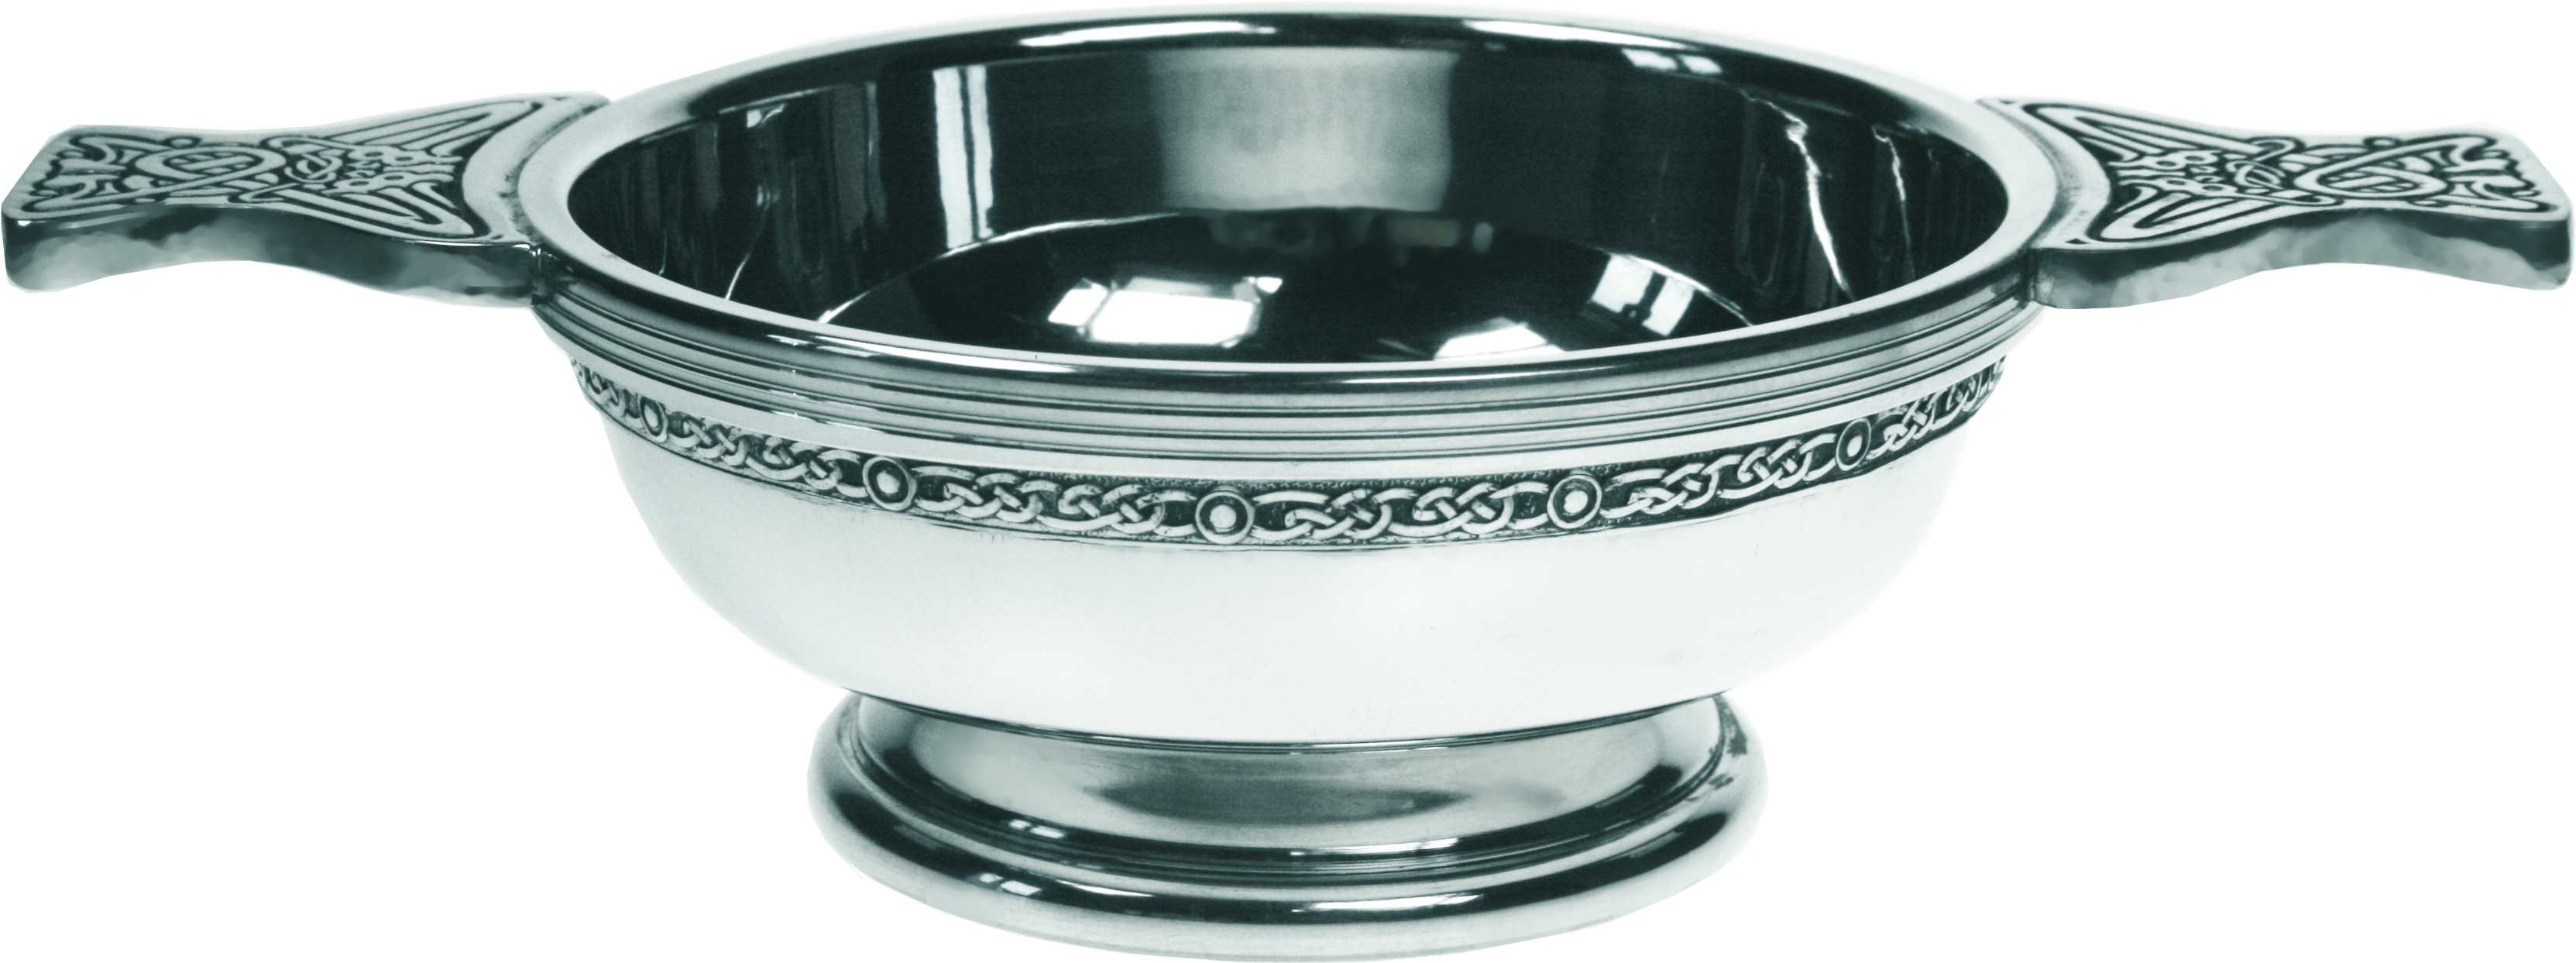 "Pewter Quaich Bowl with Celtic Band and Patterned Handle 11.5cm (4.5"")"